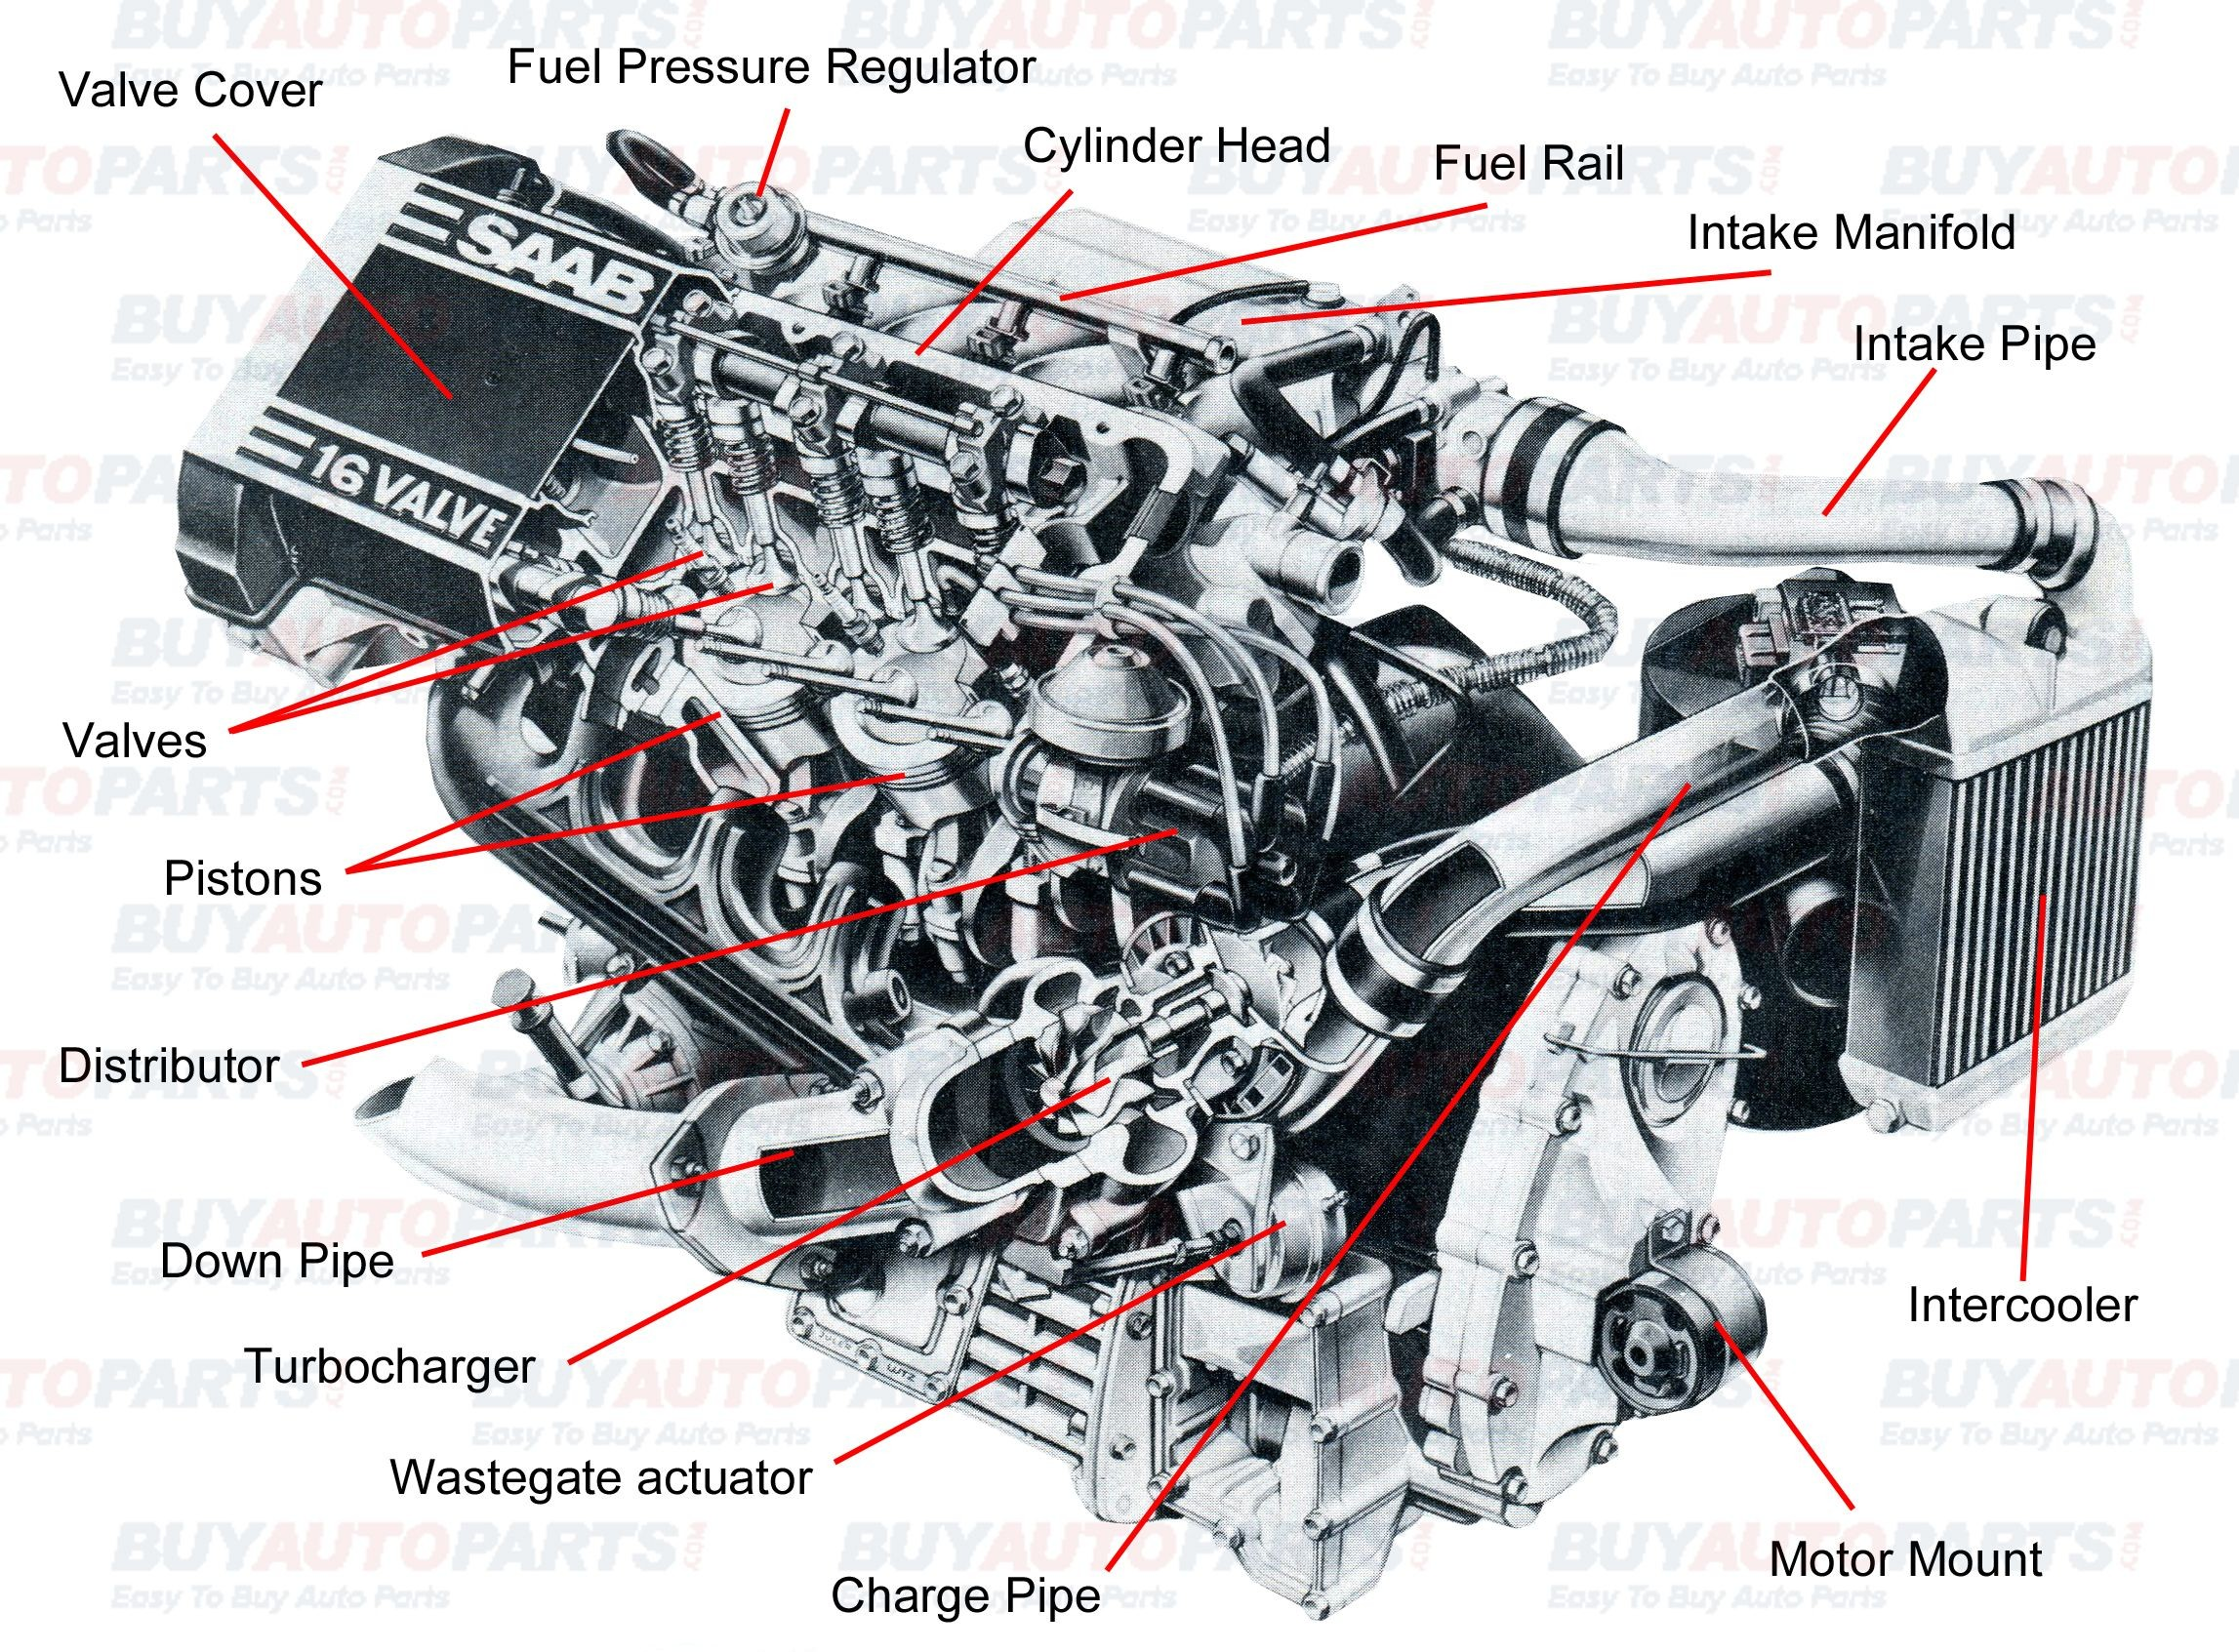 Simple Car Engine Diagram All Internal Bustion Engines Have The Same Basic Ponents